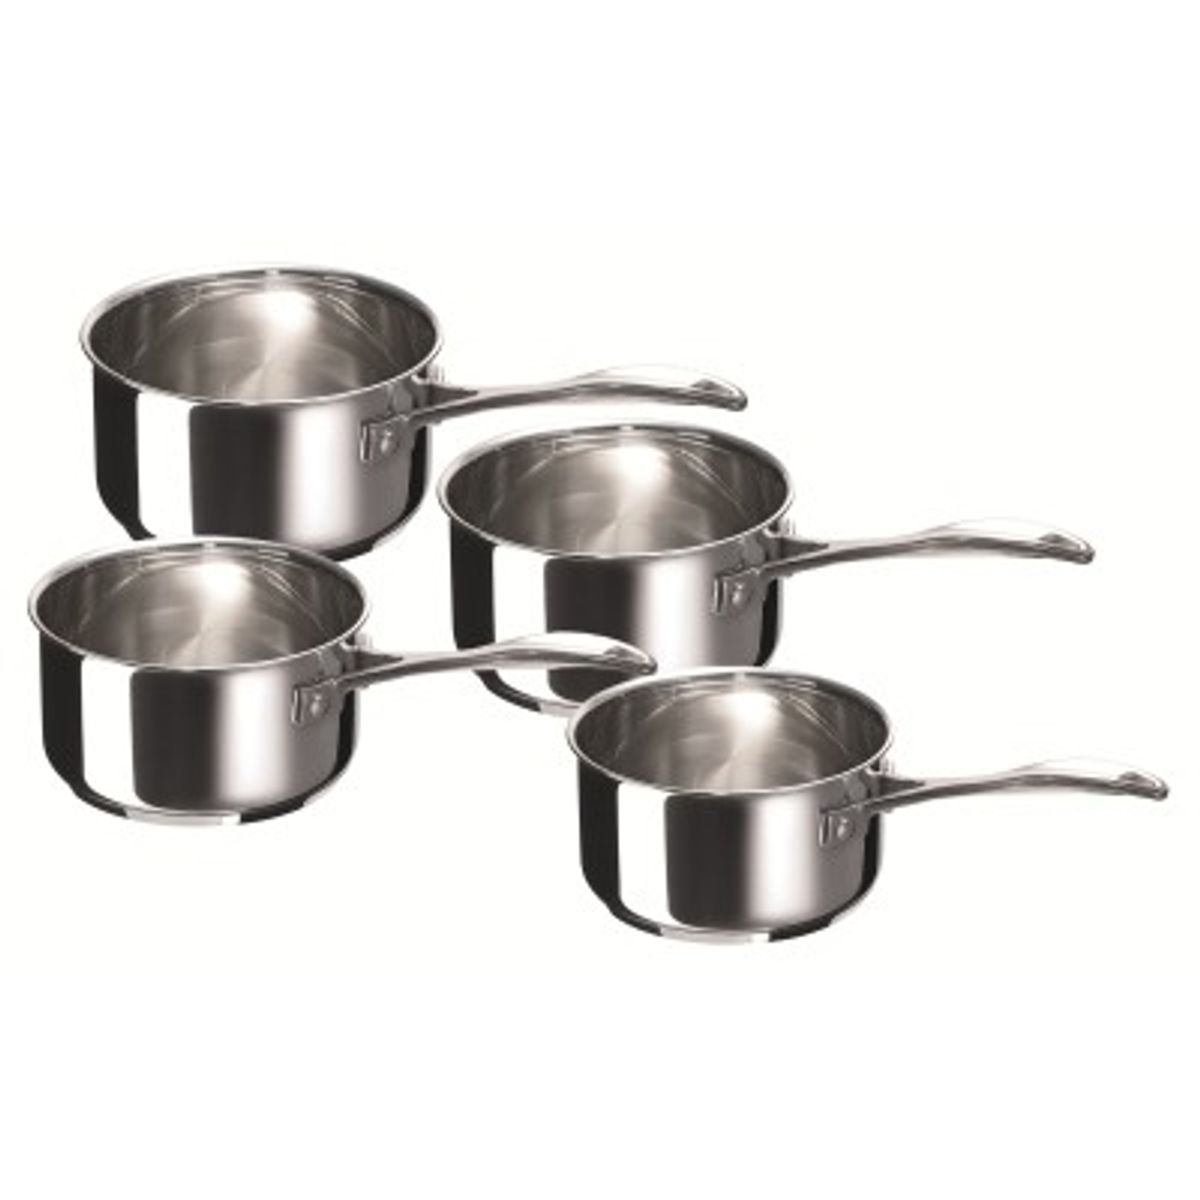 Set 4 casseroles chef 14/20cm - Beka